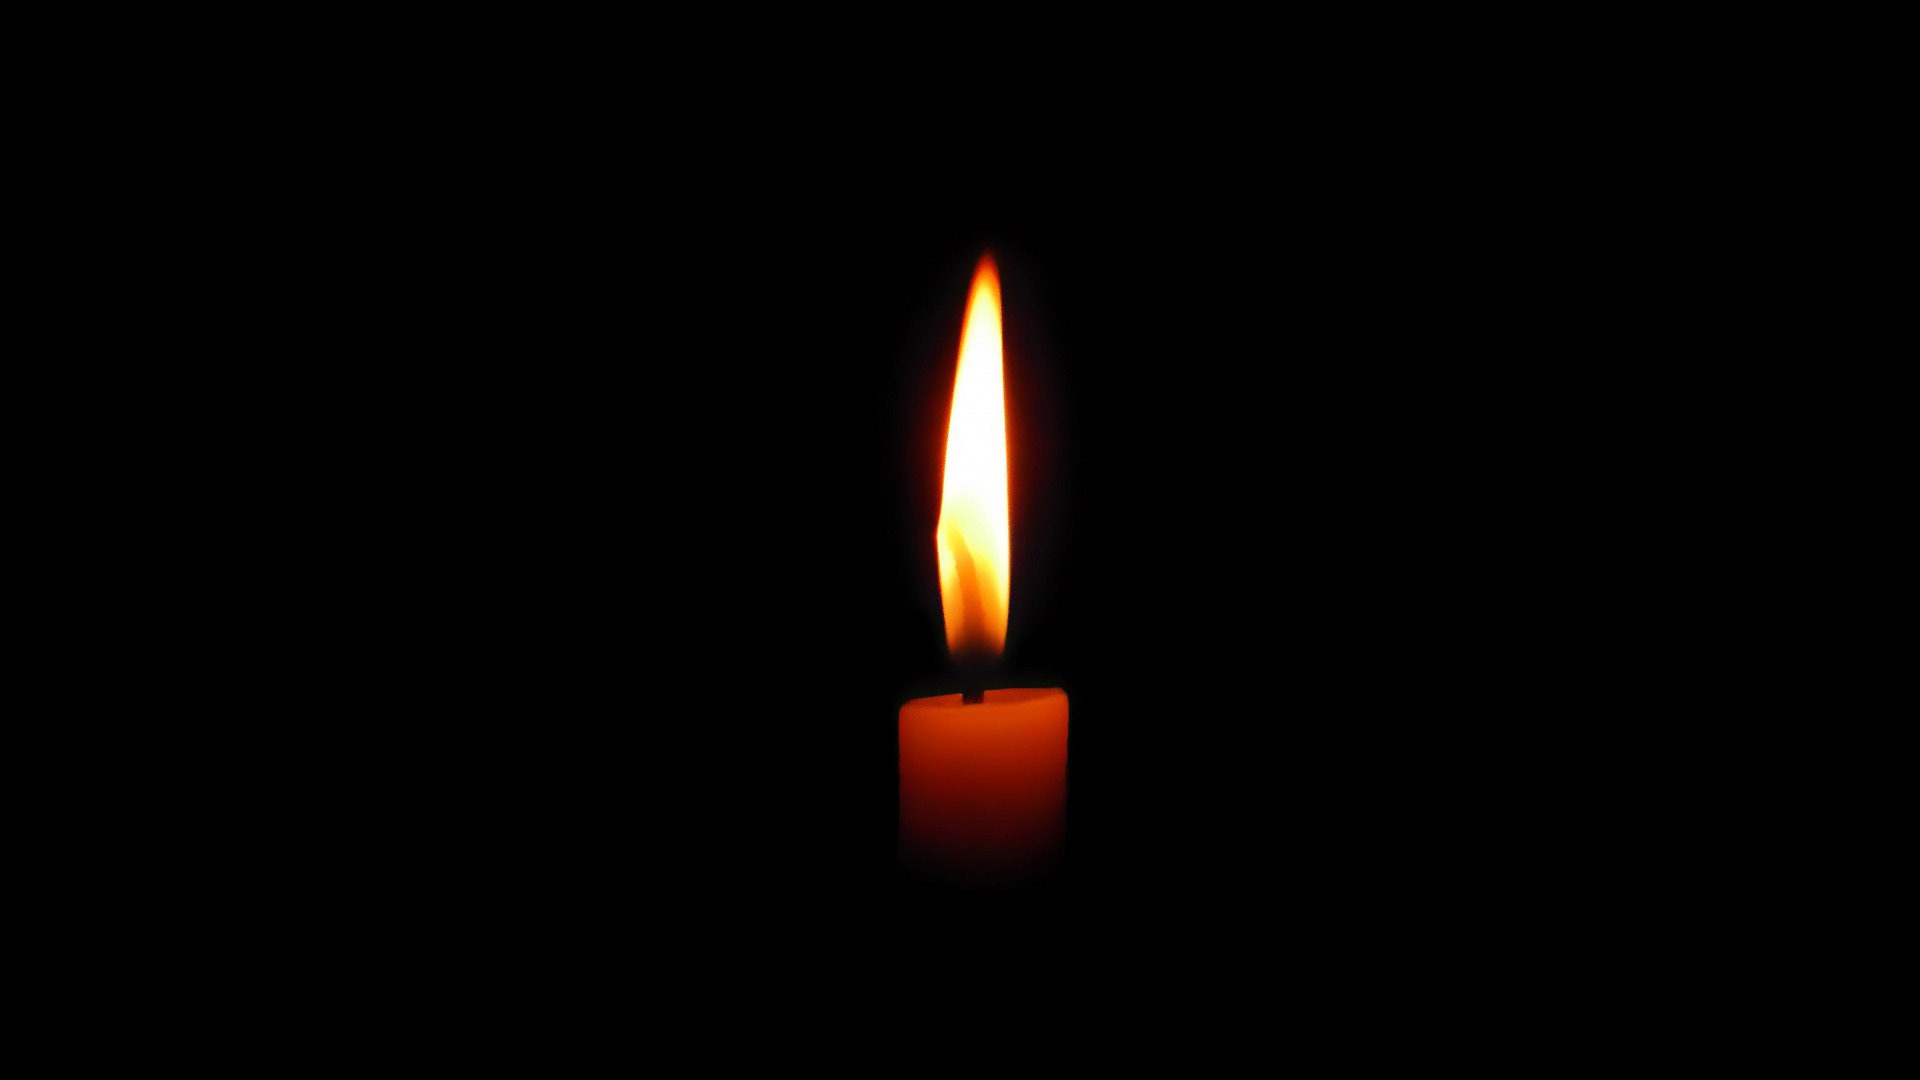 Candle wallpaper 11797 1920x1080